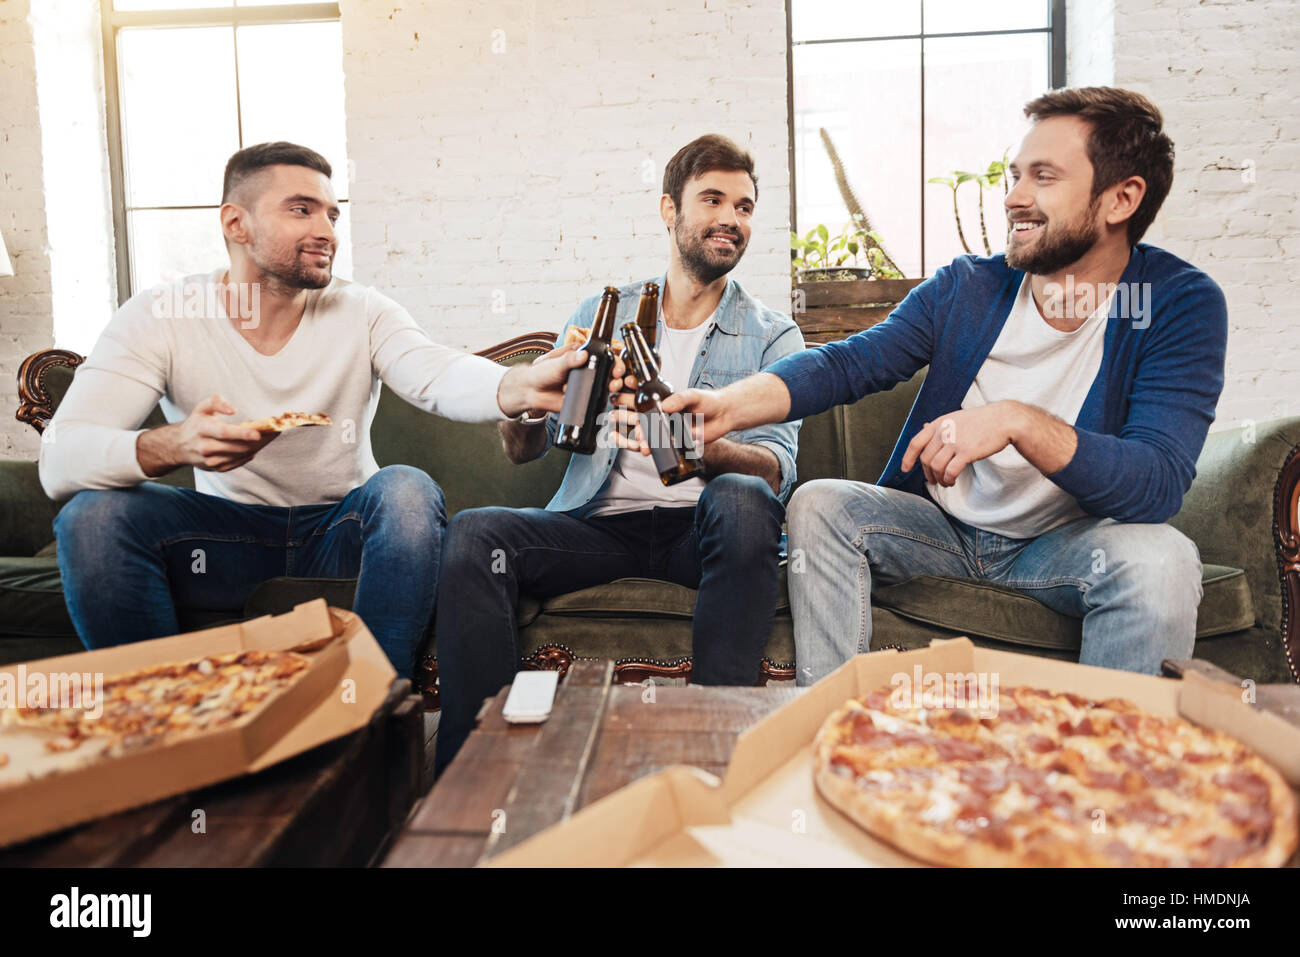 Delighted pleasant men drinking beer - Stock Image